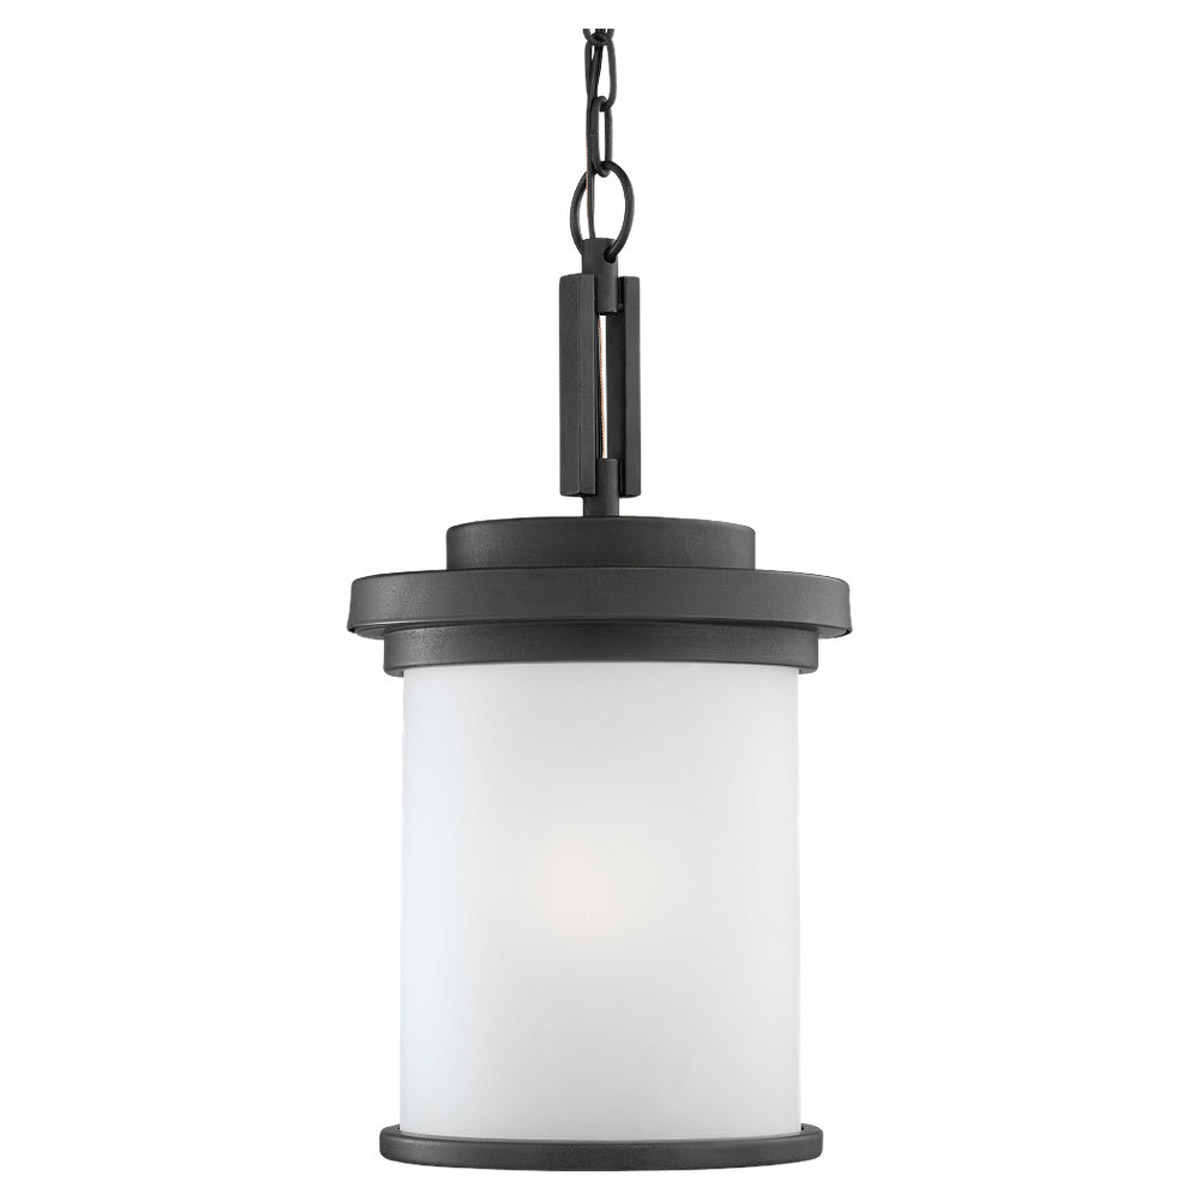 Sea Gull Lighting Winnetka 1 Light Outdoor Pendant in Forged Iron 60660-185